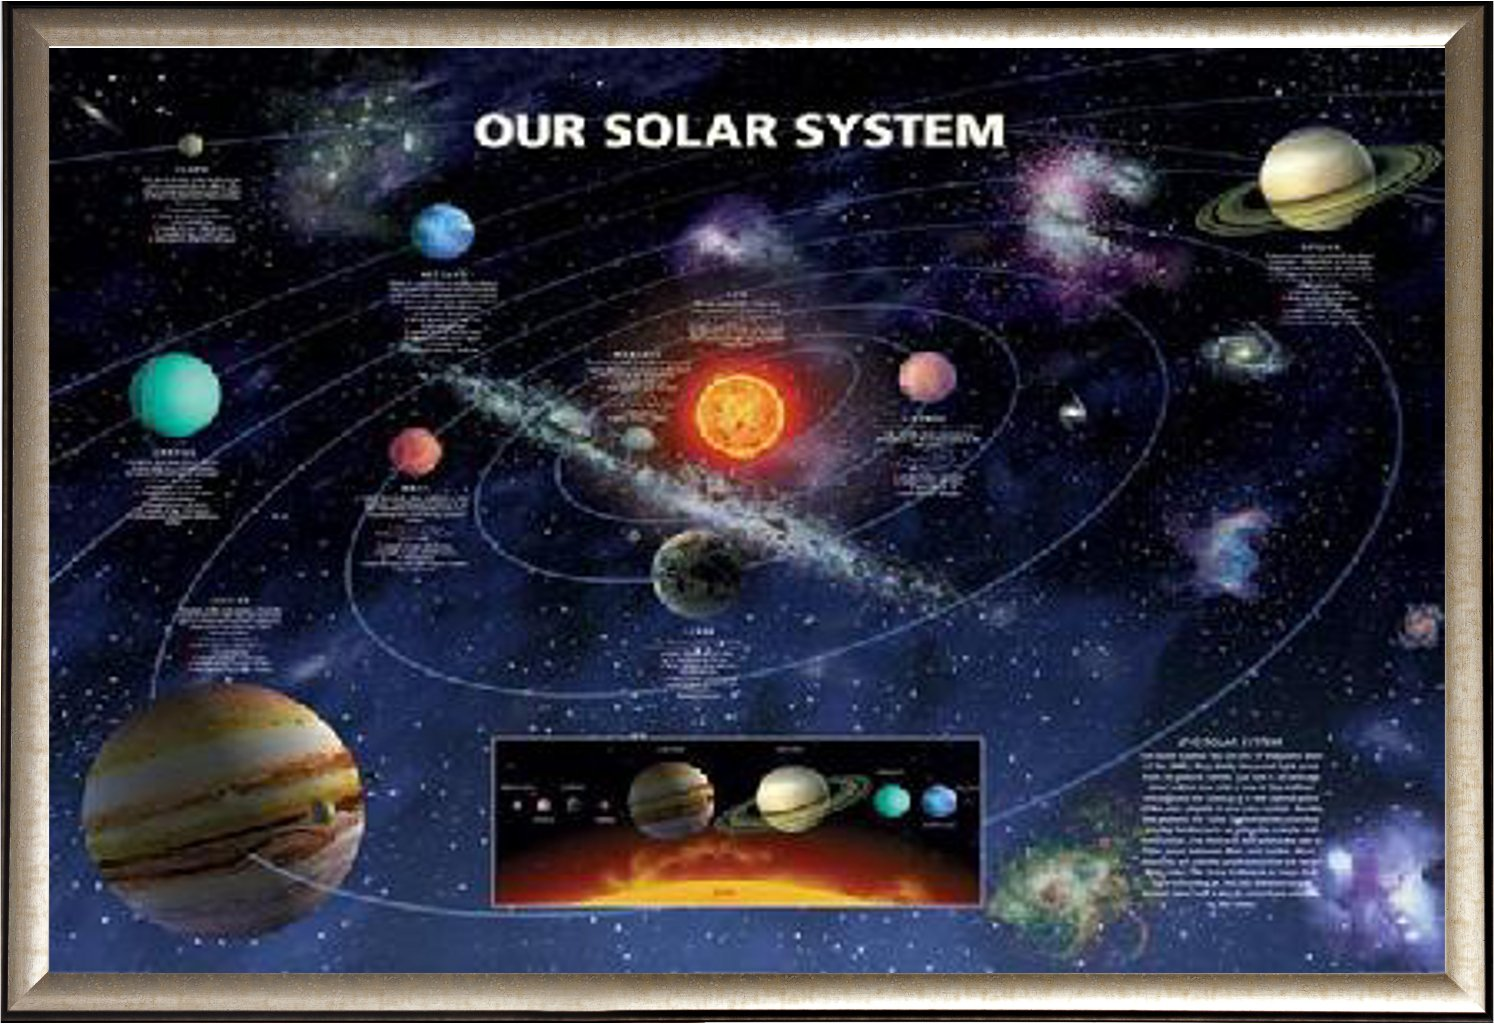 printable pictures our solar system - photo #20